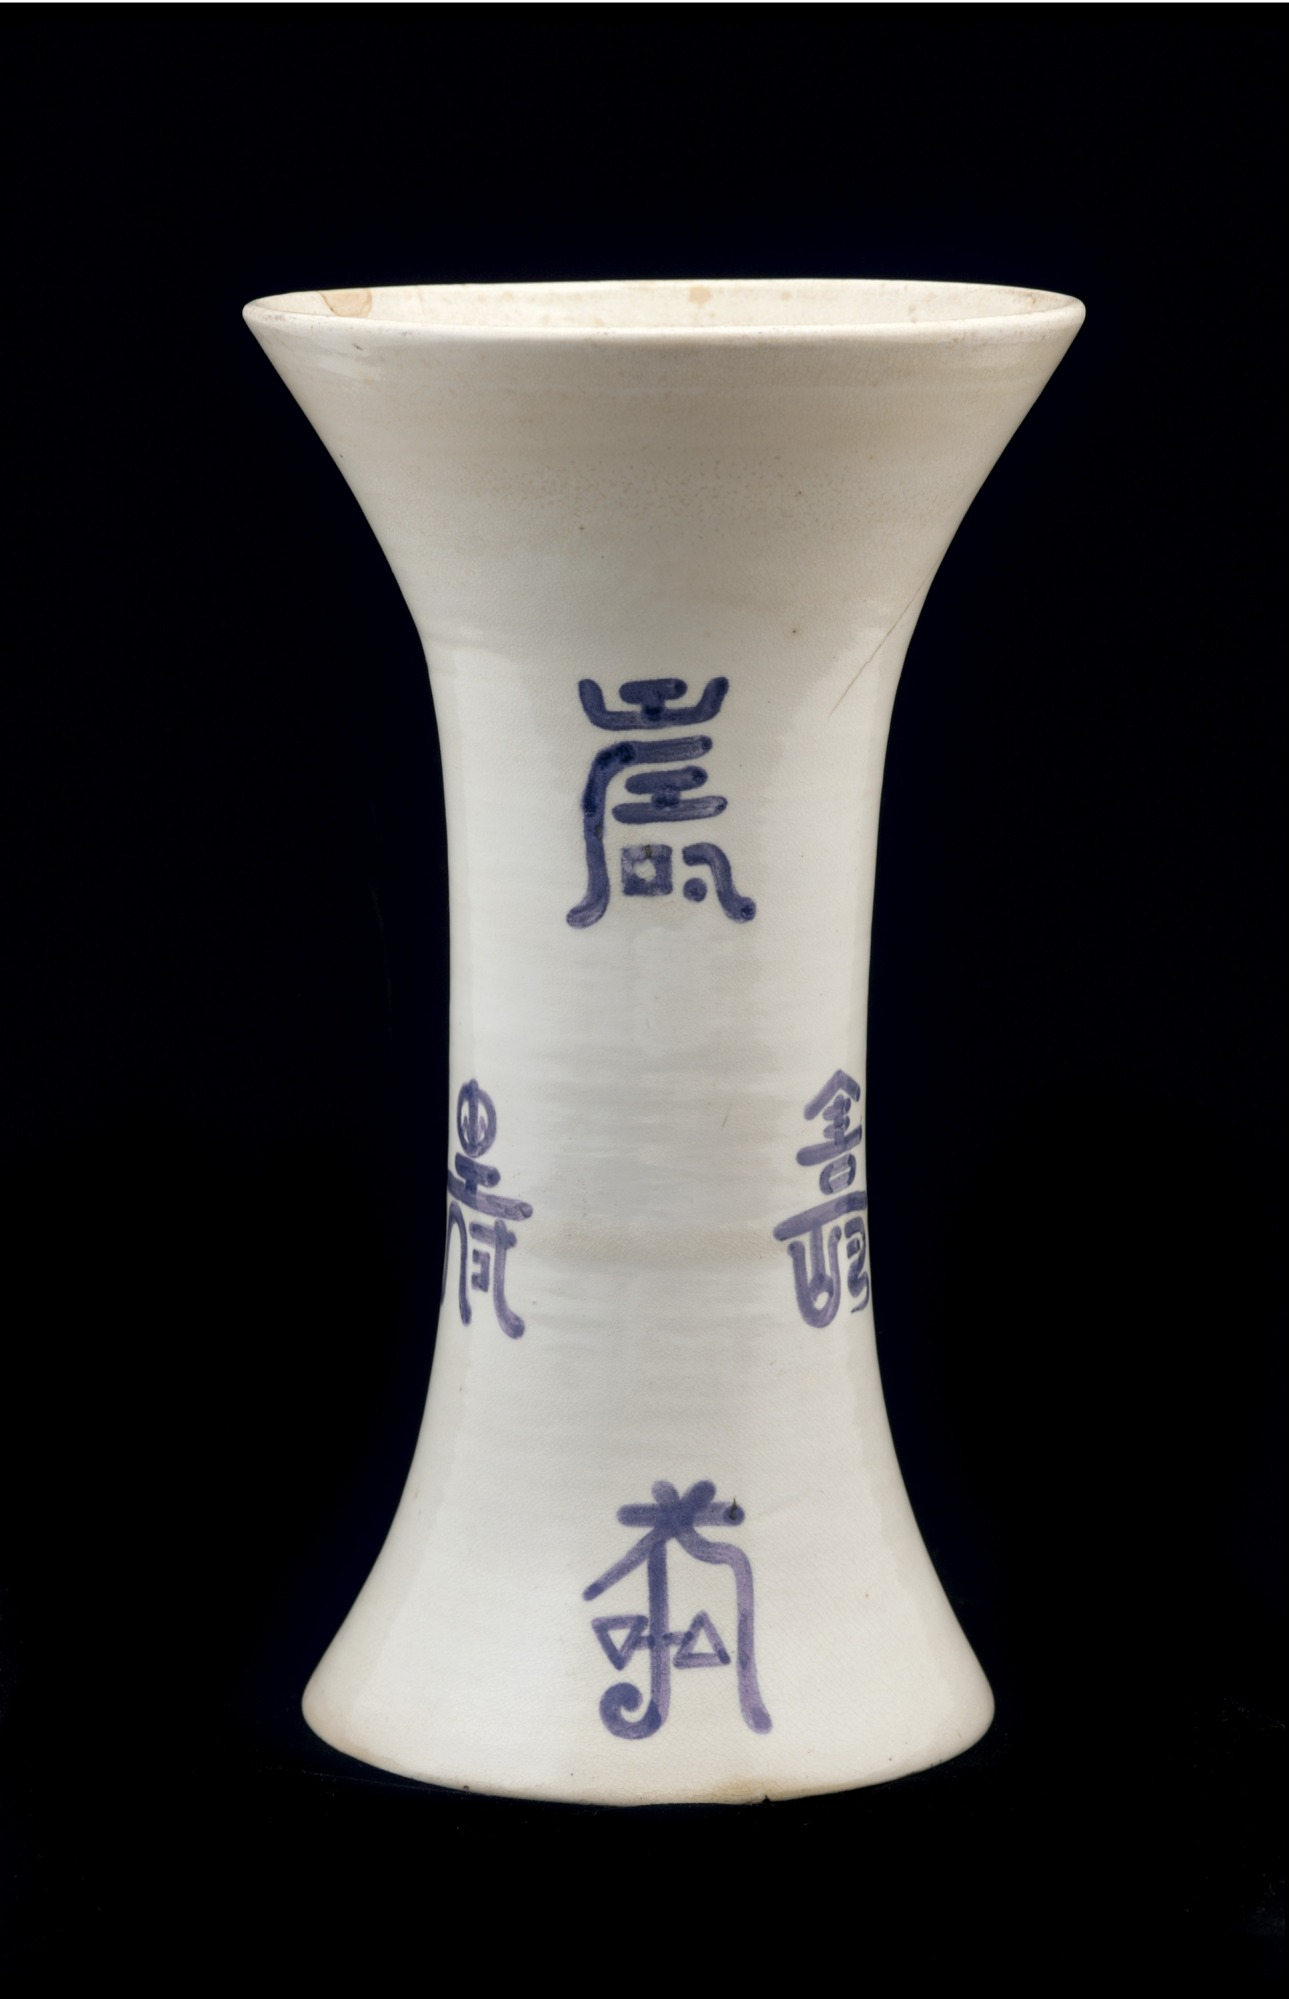 profile: Taizan ware vase with design of the character for